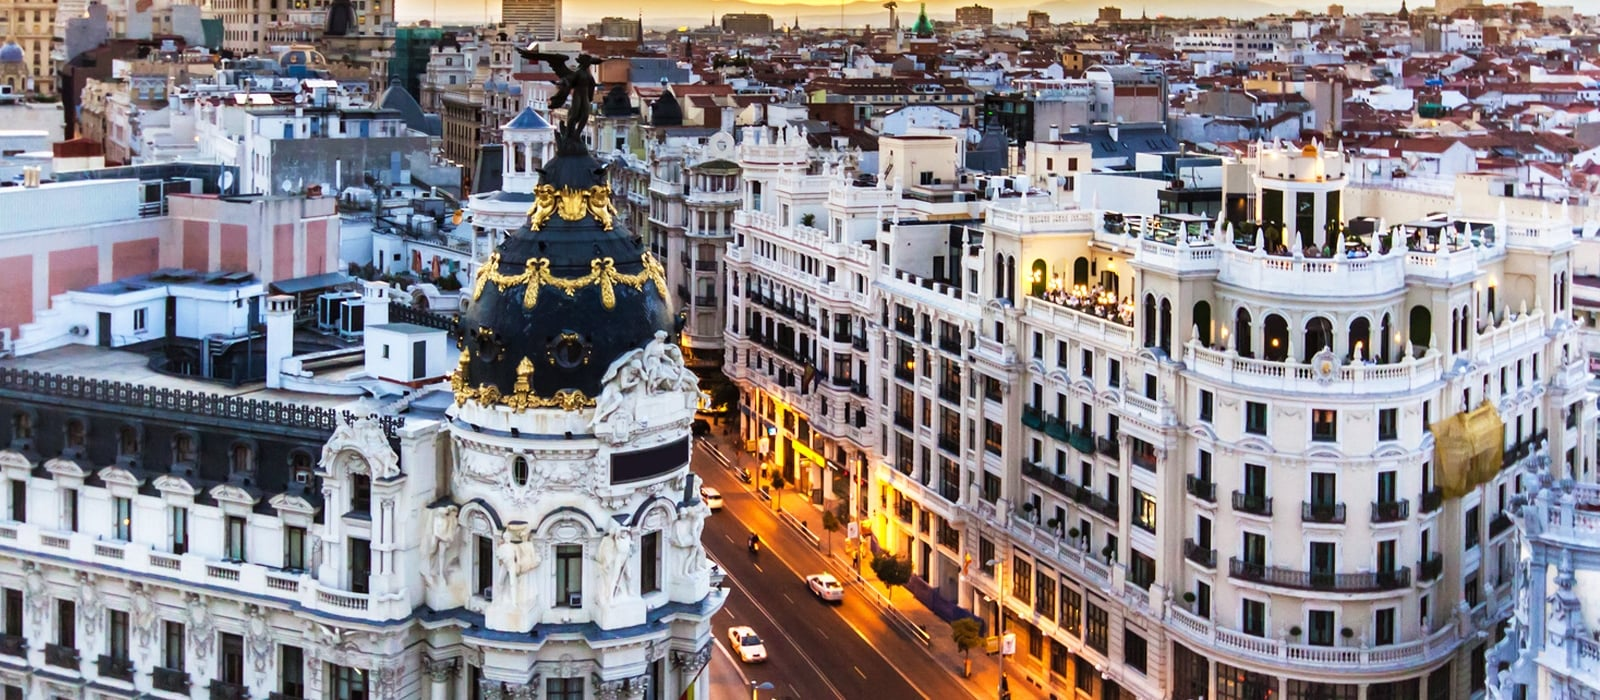 Hotels in madrid spain vincci hotels Hoteles en madrid espana